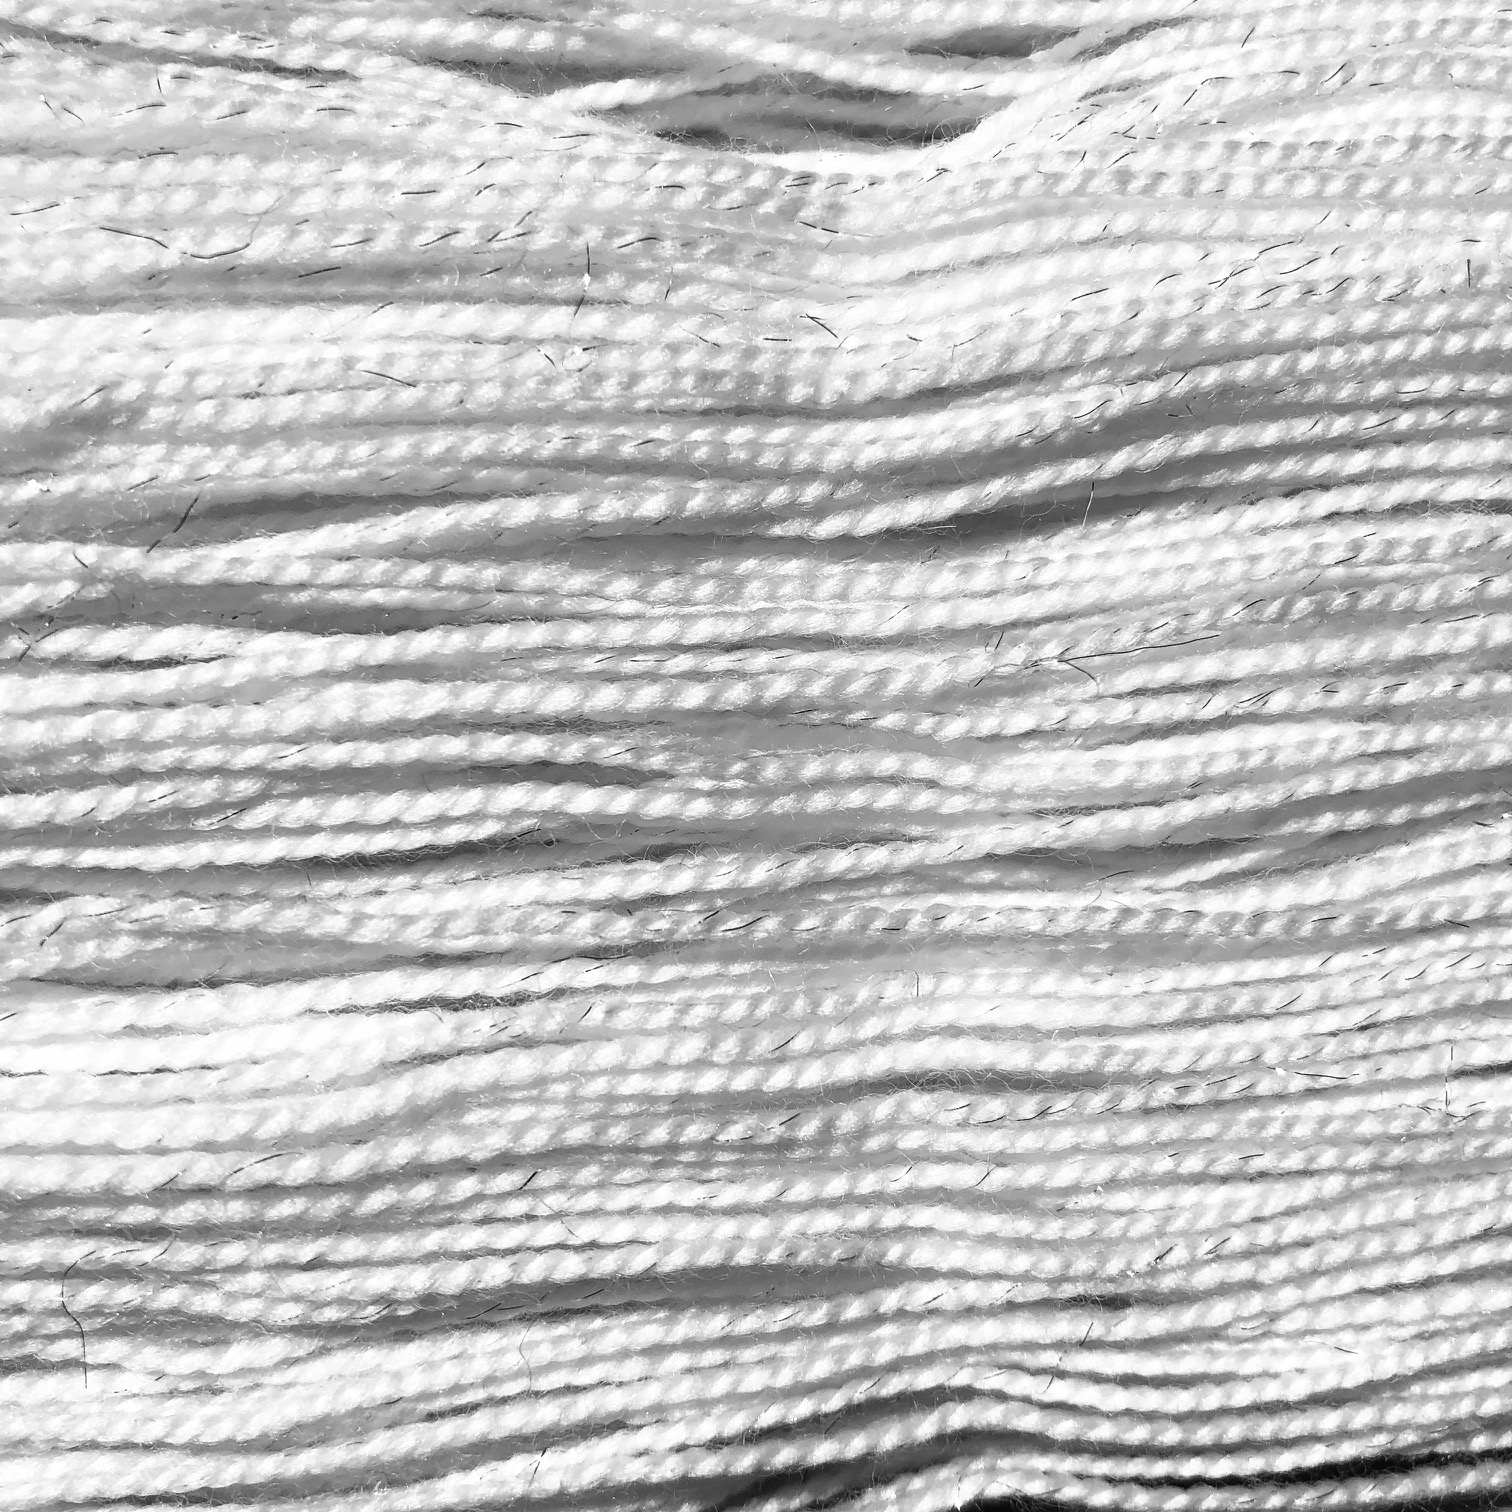 SPARKLE FINGERING - 75% Superwash Merino/20% Nylon/5% Stellina (silver-toned) // 438 yds/100 grAlso part of the 2-ply Fingering Family, this silver-toned subtle sparkle is soft enough to wear directly against the skin. Try mixing a skein into a larger project for some added dimension!